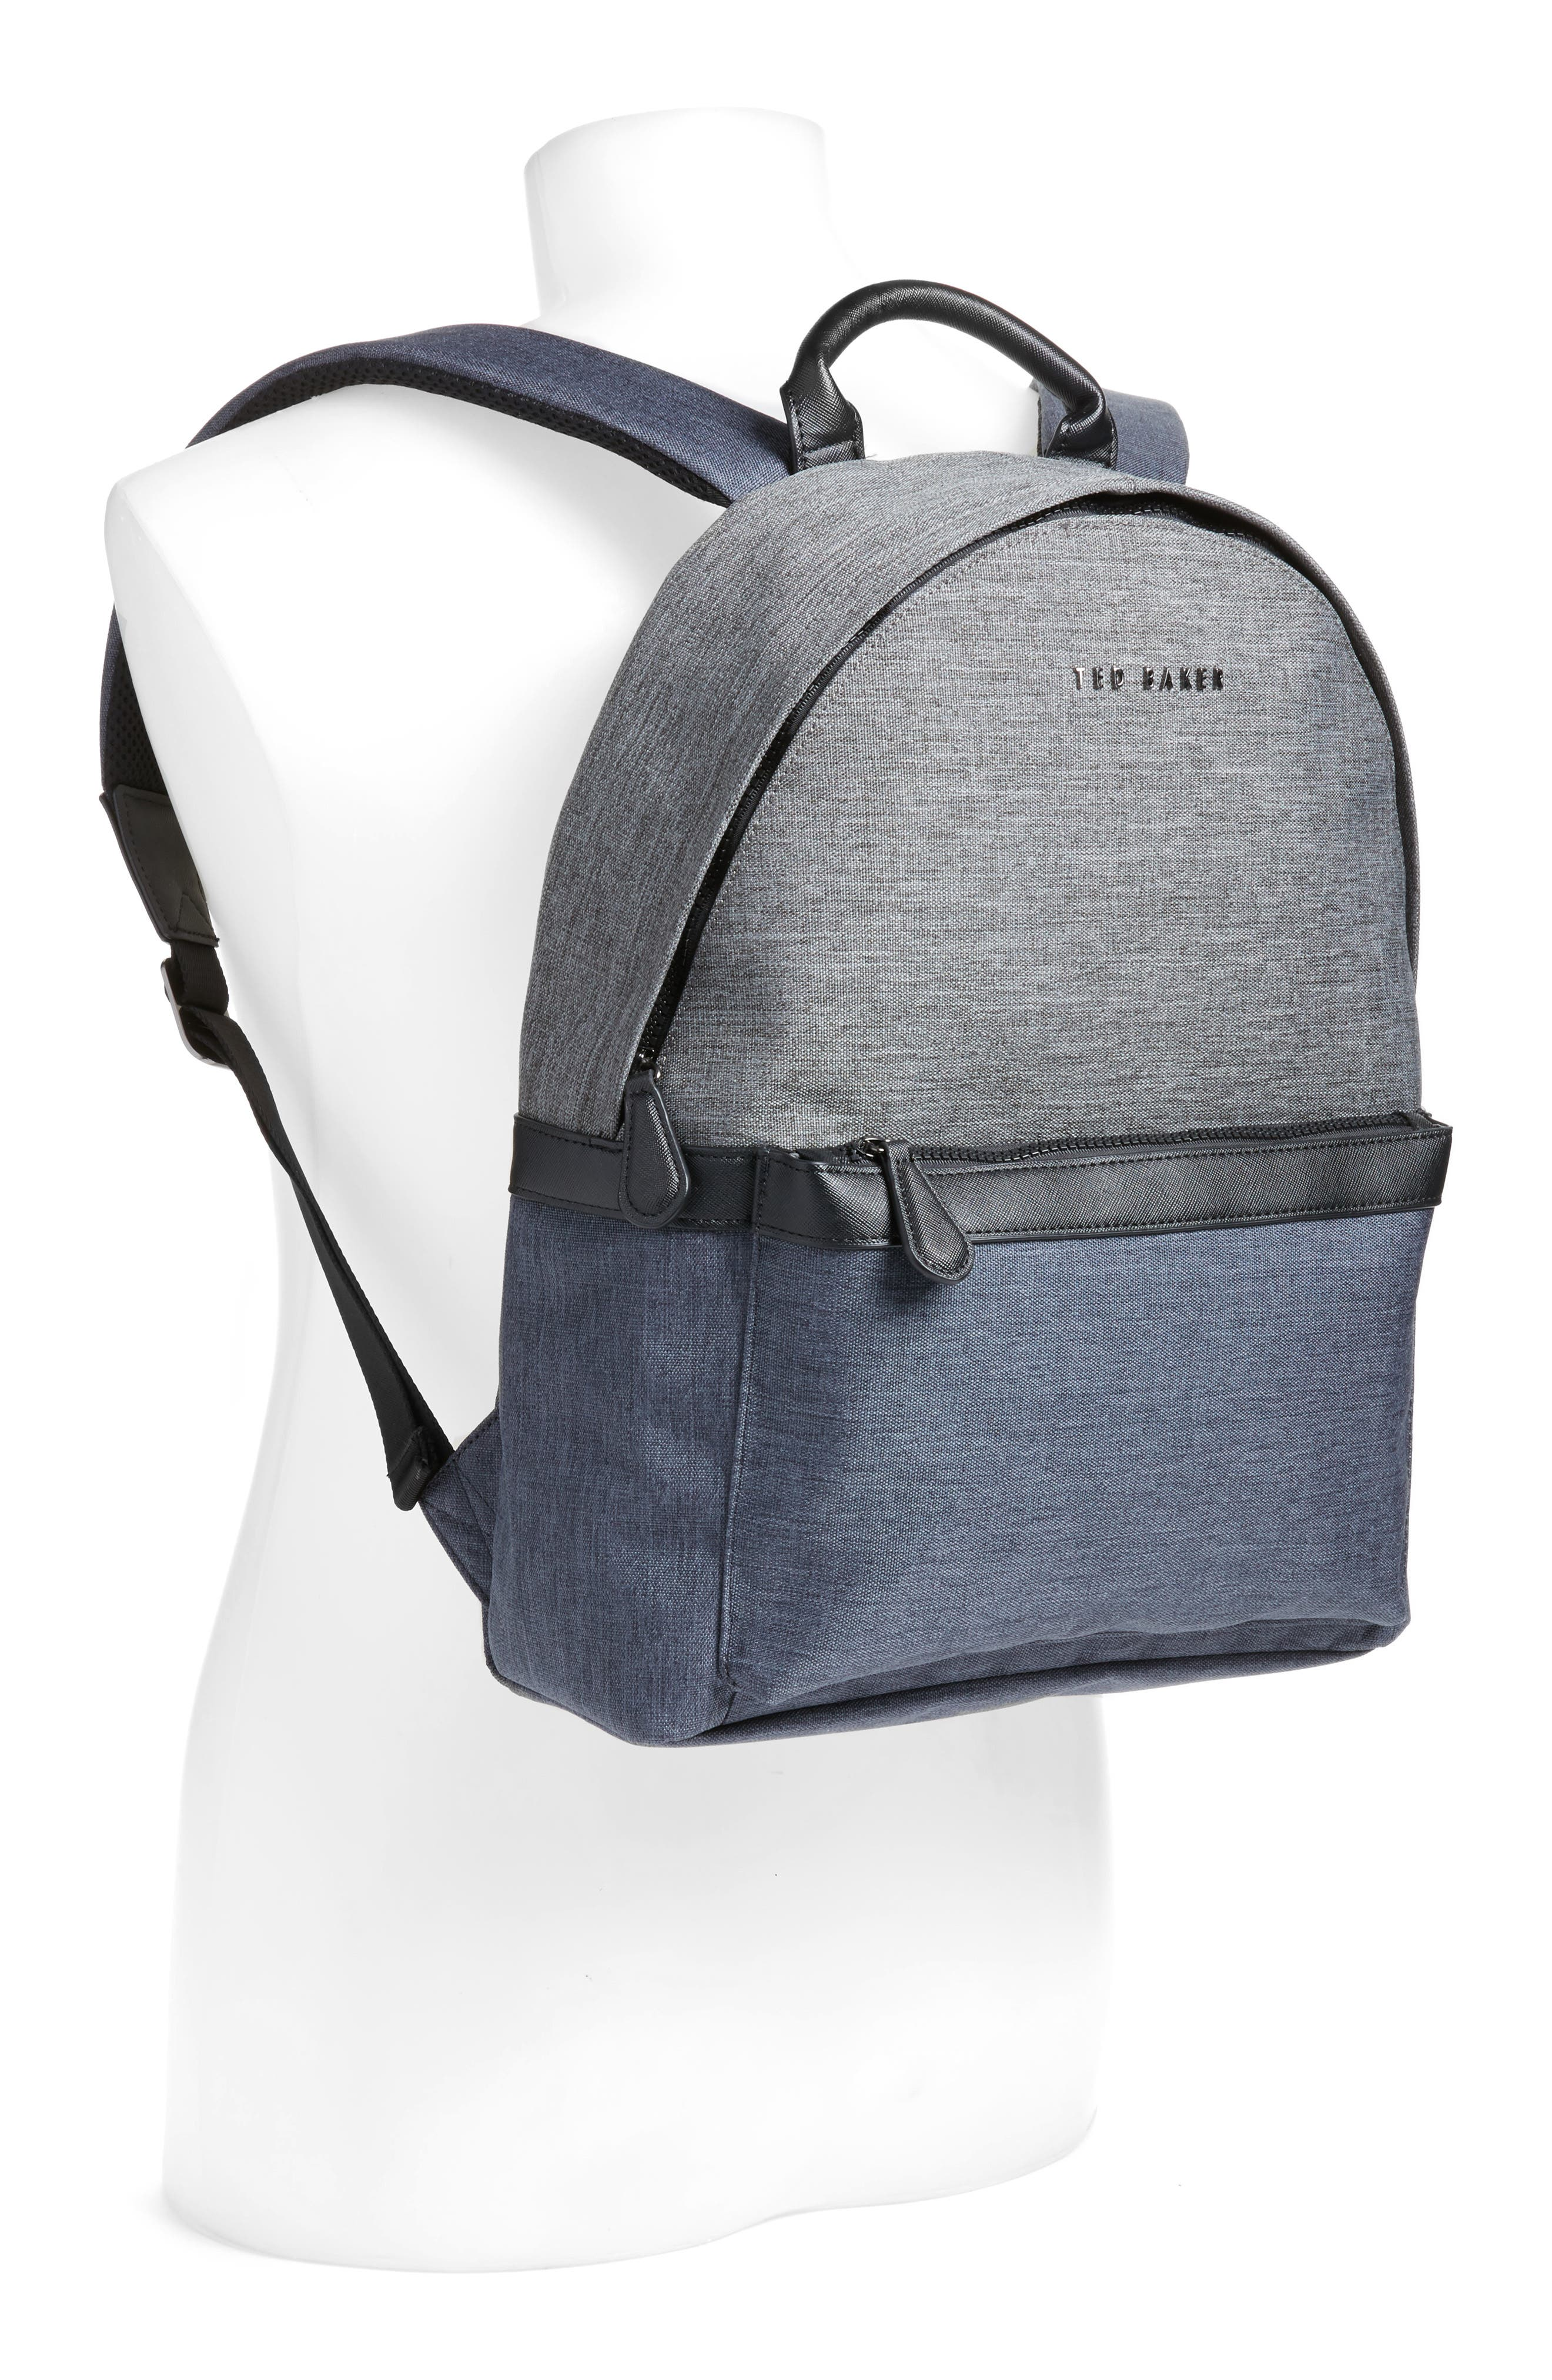 Stingra Backpack,                             Alternate thumbnail 2, color,                             010